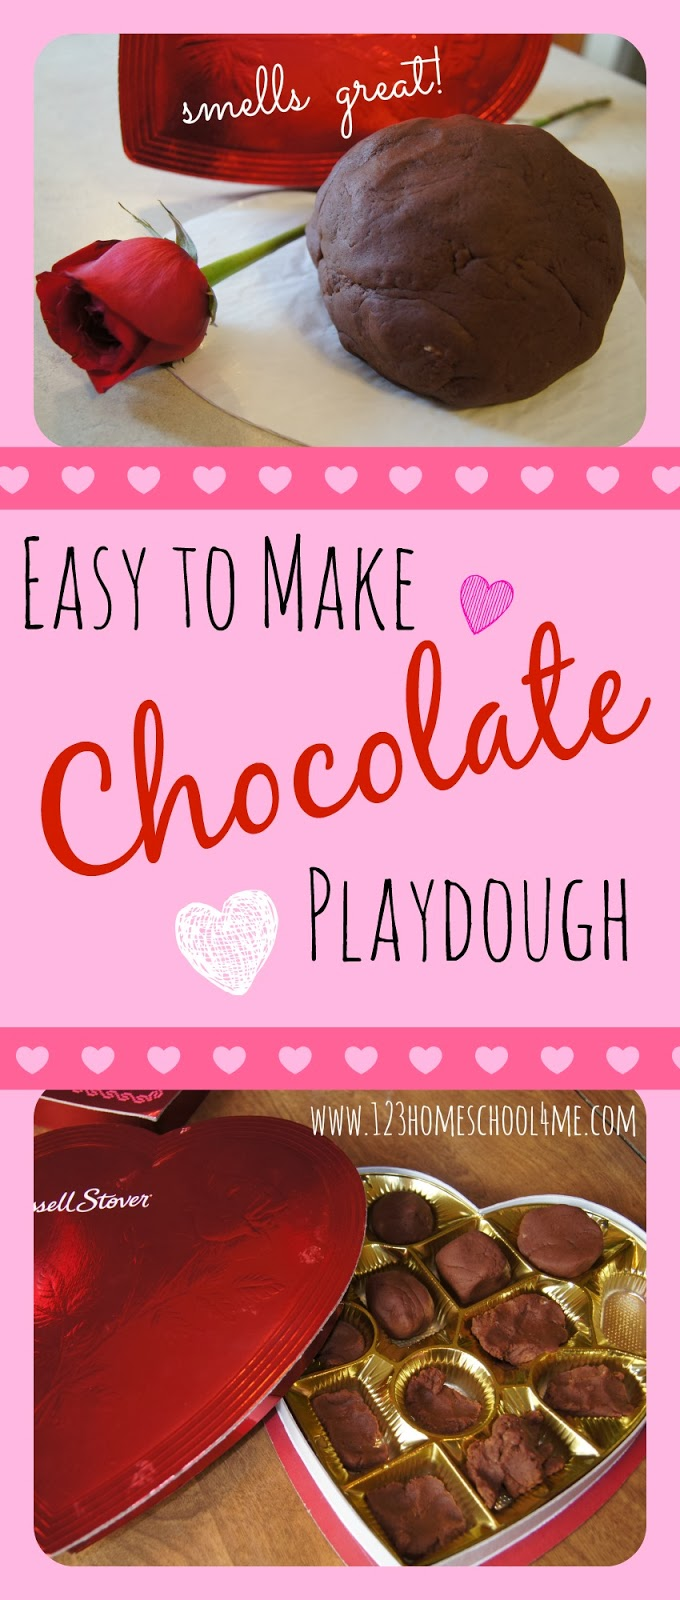 Easy to Make Chocolate Playdough Valetnine's Day Kids Activity